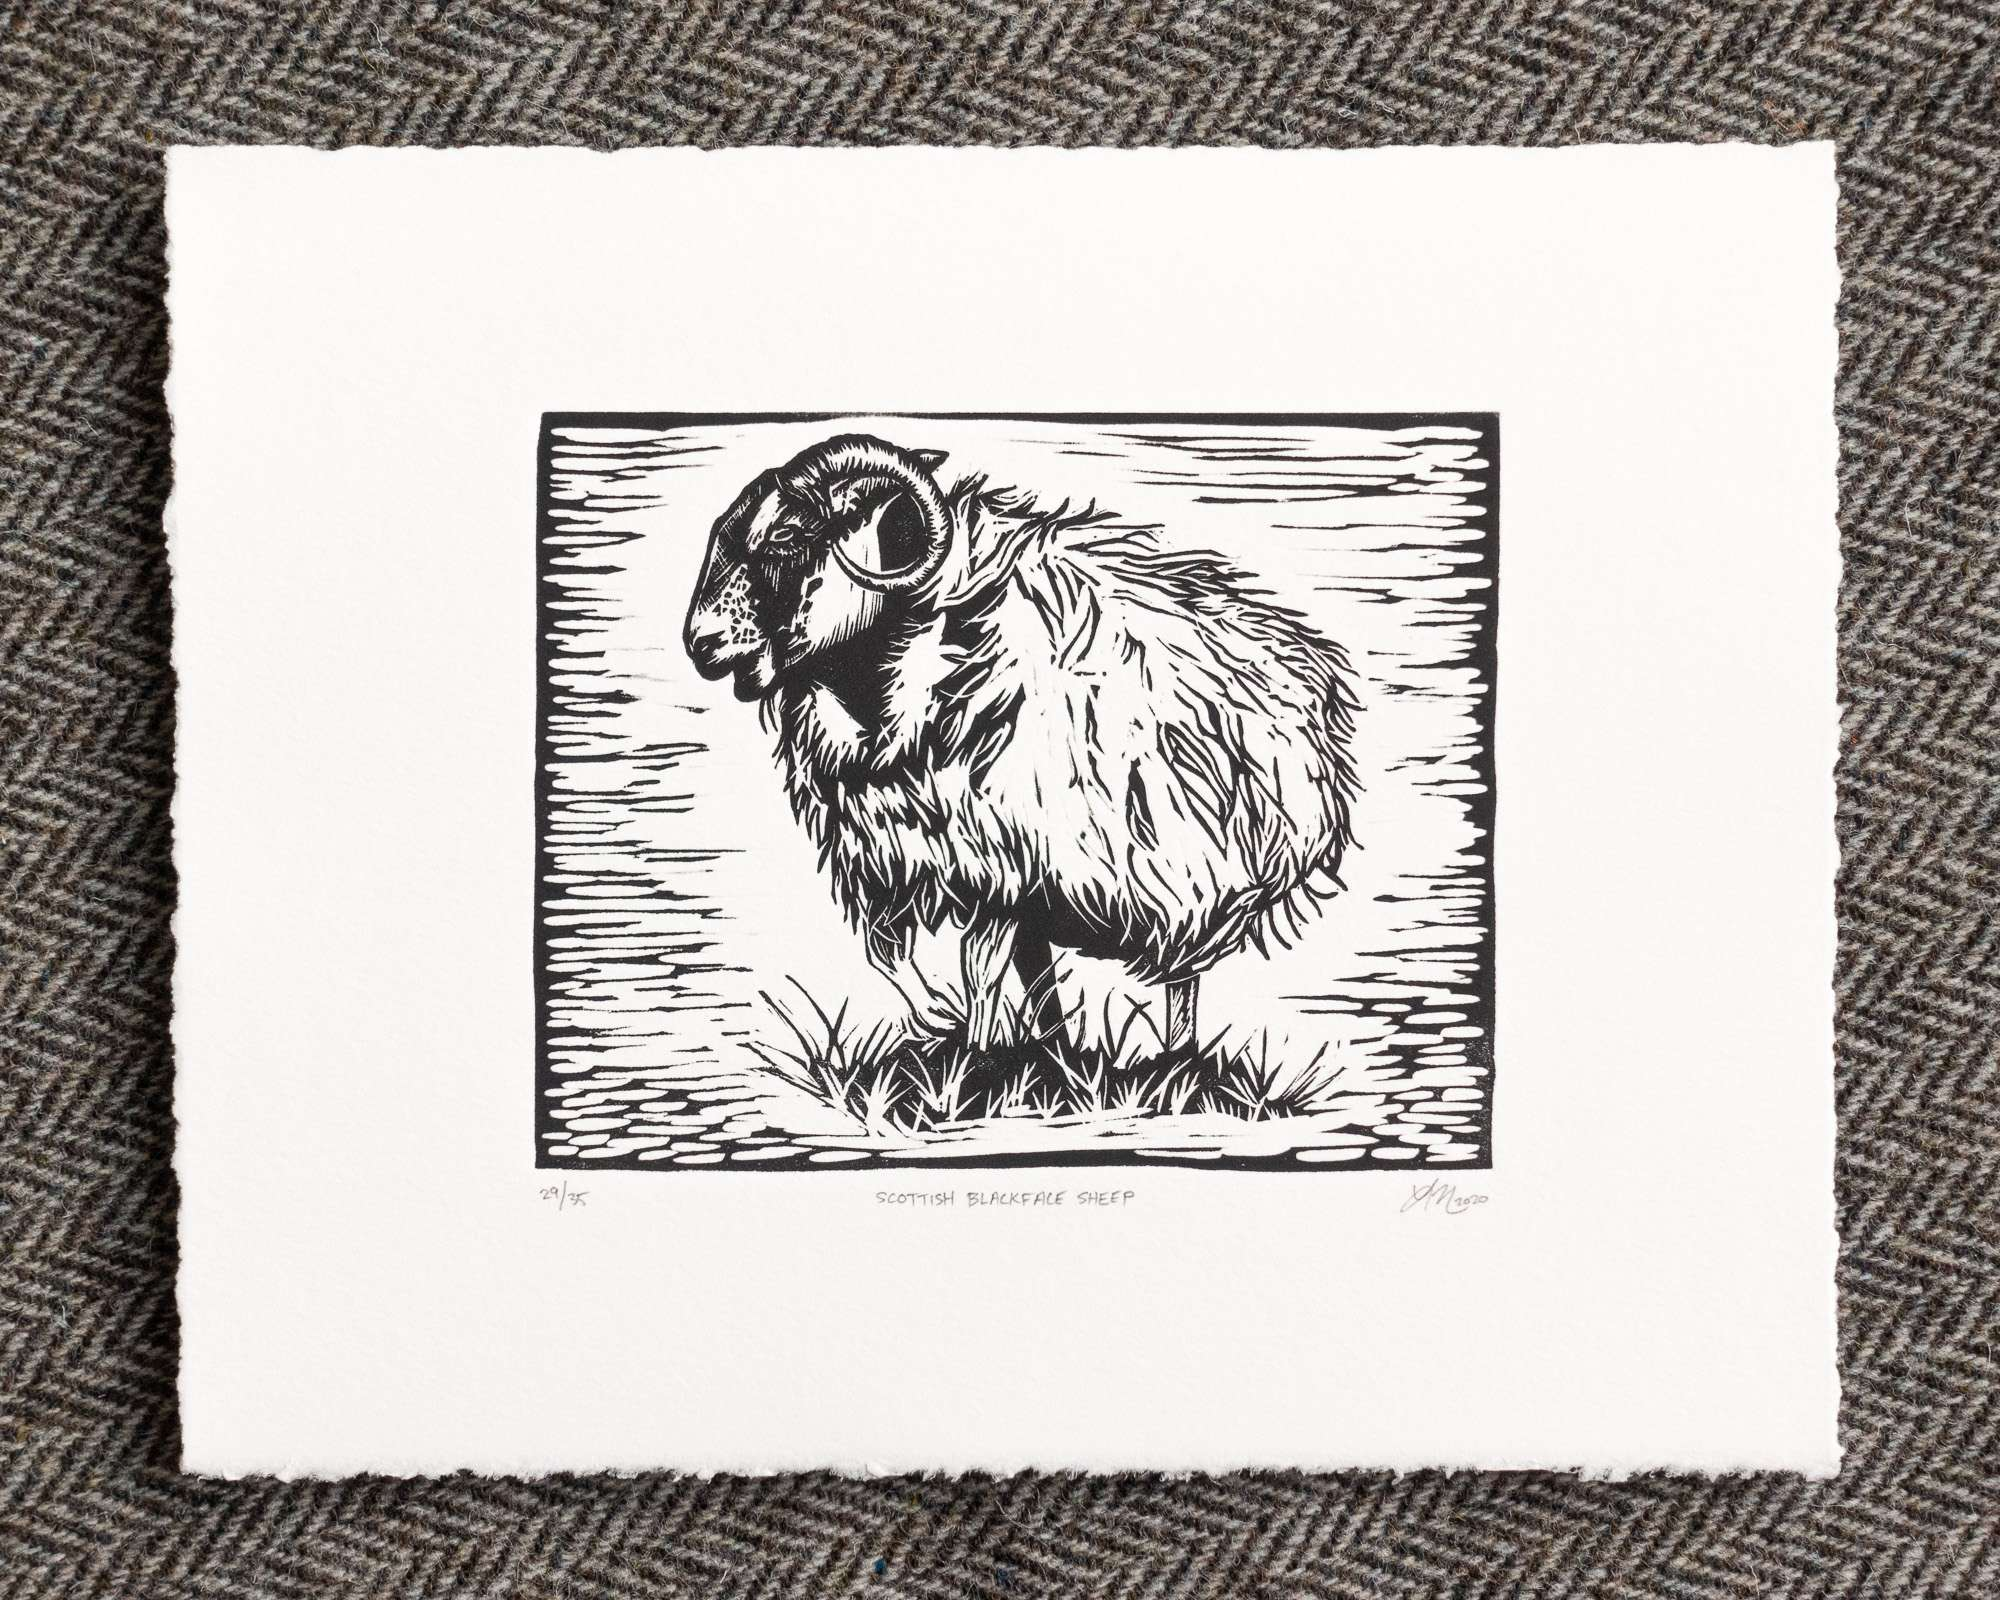 A print of a black and white sheep standing on grass within a black border, printed on white paper; the background of the scene has horizontal chatter (ink streaks).